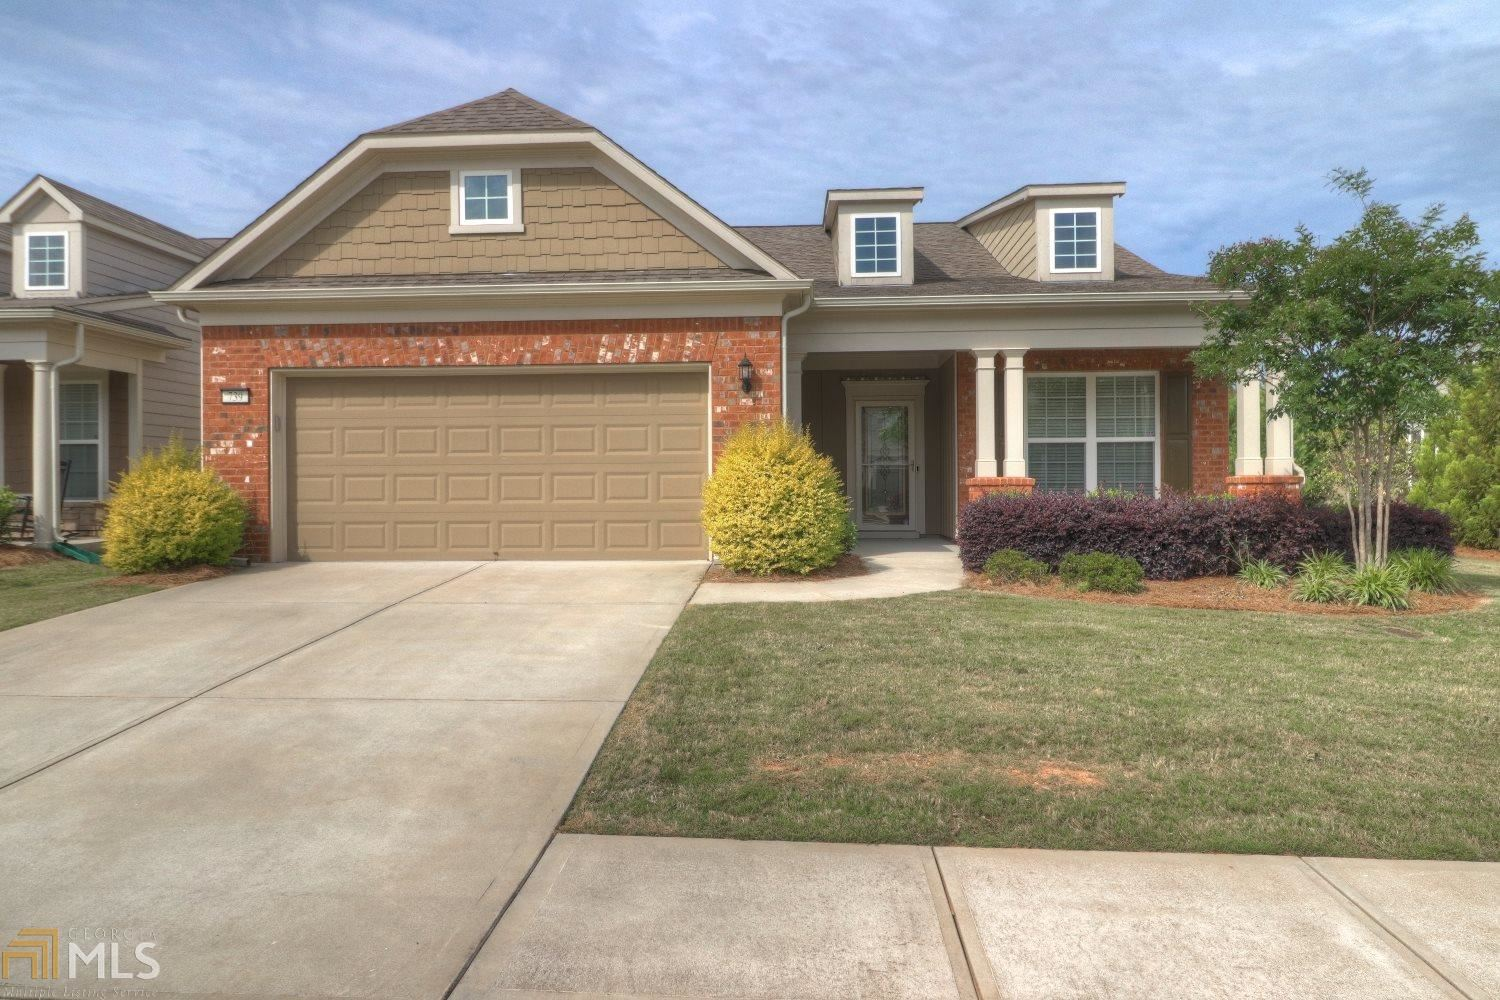 739 Firefly Ct, Griffin, GA 30223 - #: 8786610